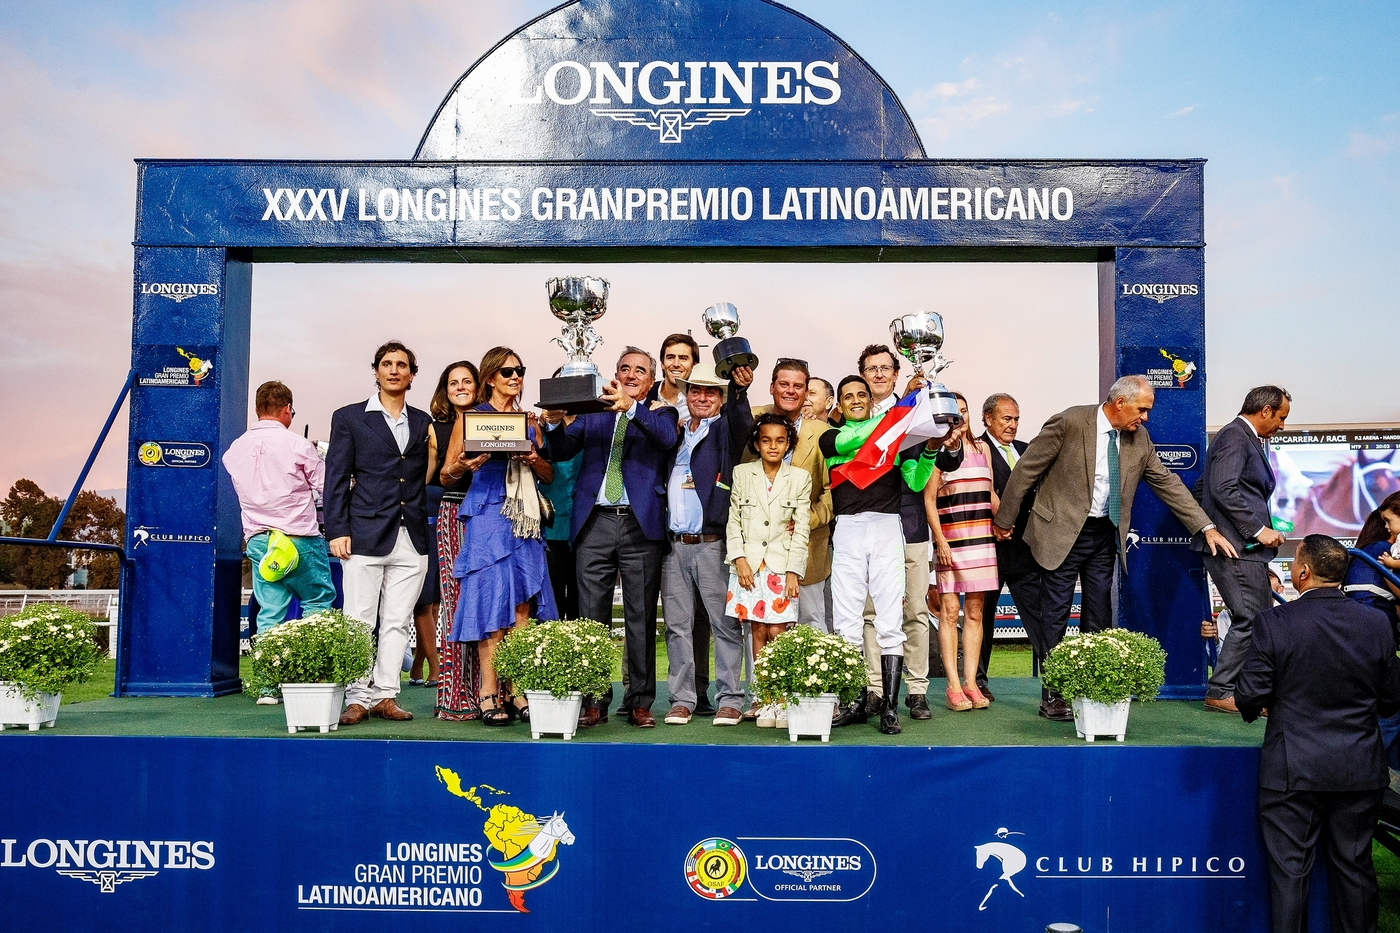 Longines Flat Racing Event: Ya Primo reigned supreme at the 2019 Longines Gran Premio Latinoamericano  3